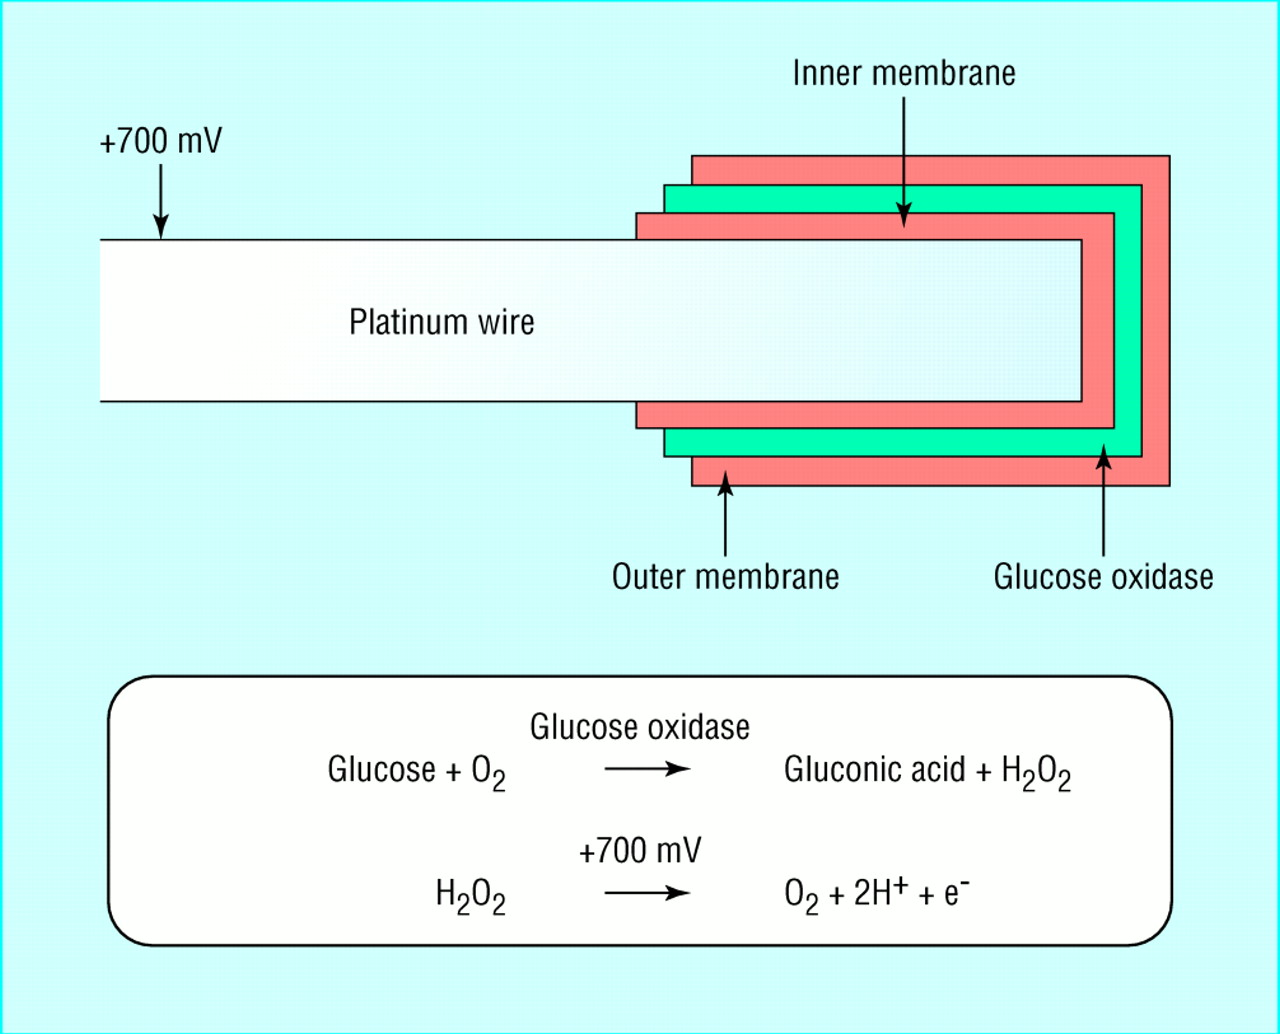 an analysis of how the concentration of enzymes controls the breakdown of hydrogen peroxide Hydrogen peroxide in the human body  the latter also showing a higher gsh concentration compared to controls,  international journal of food sciences and.